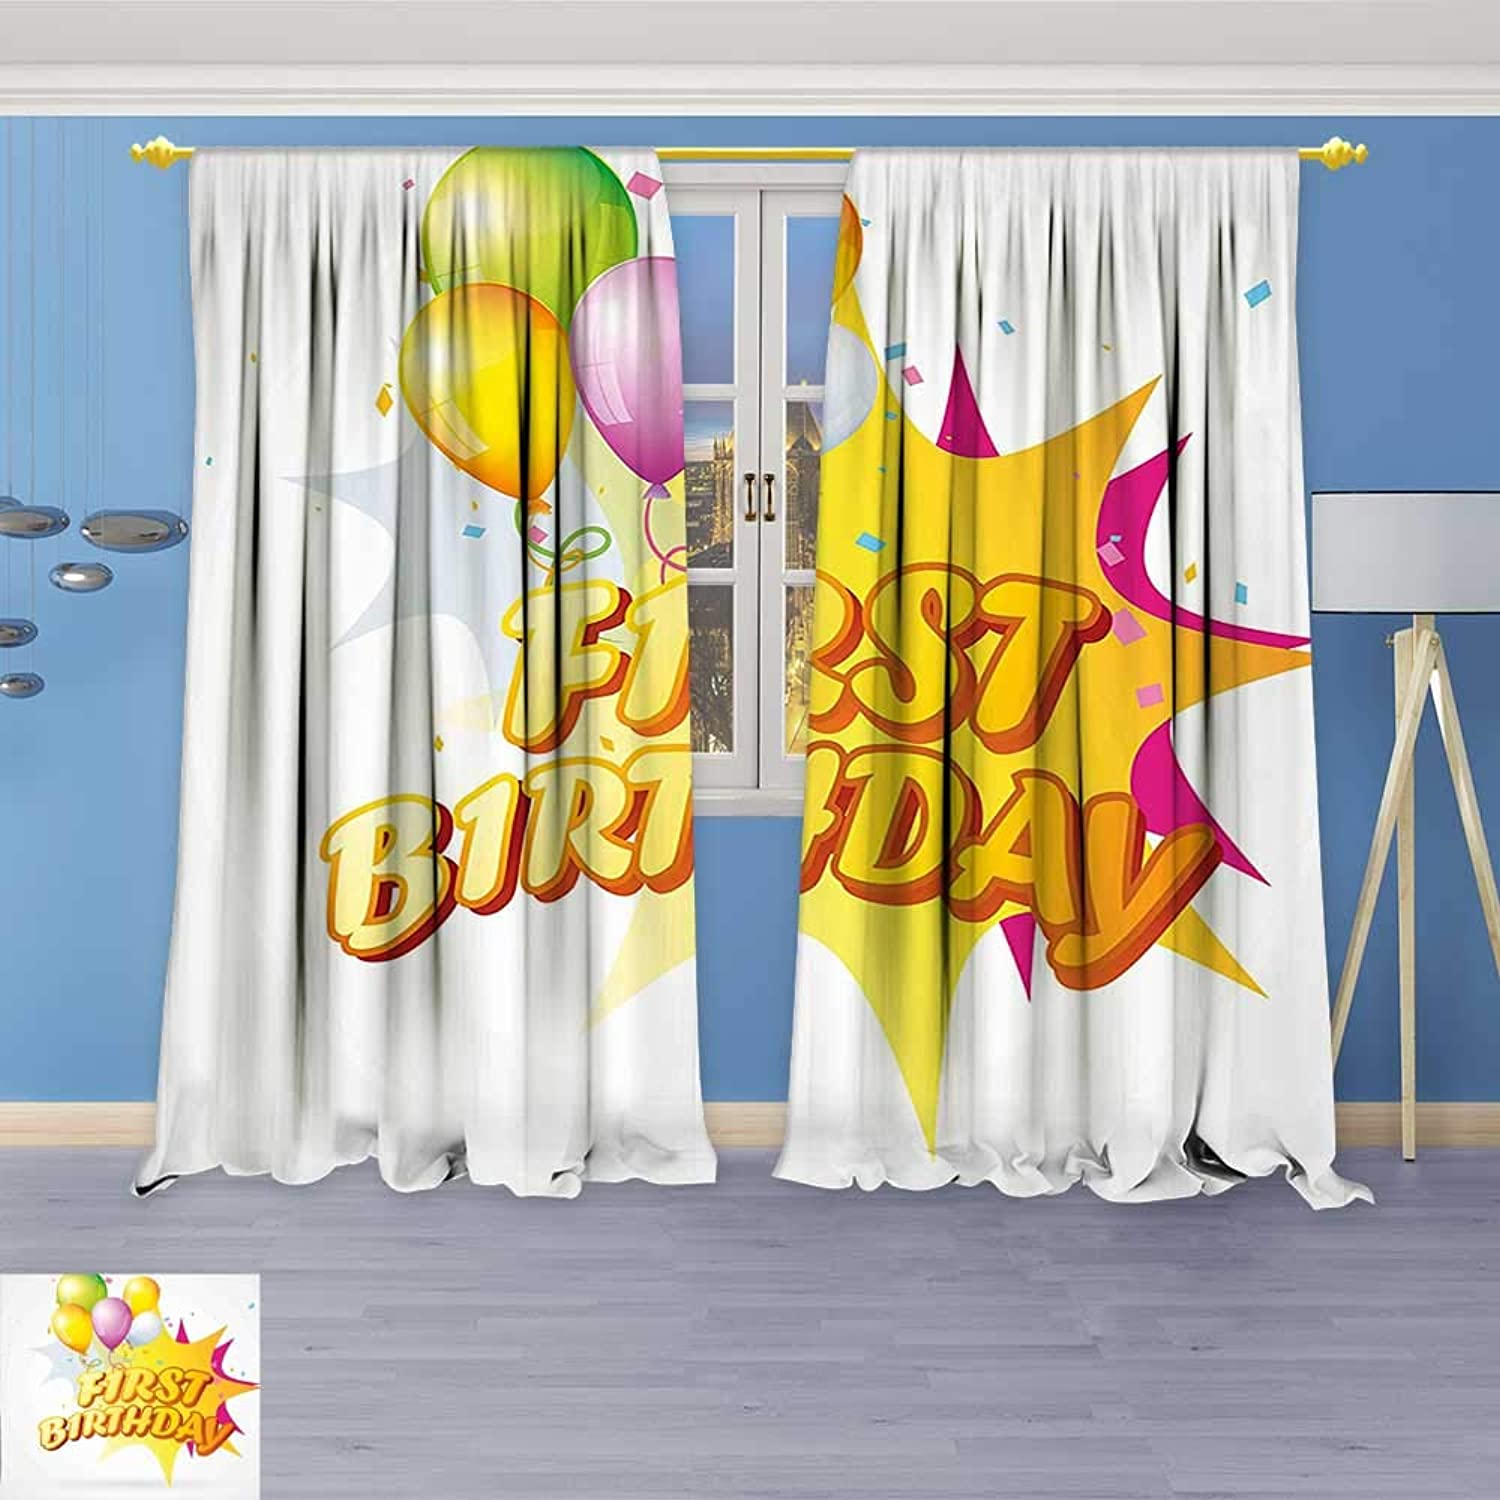 Philiphome Blackout Room Darkening Curtains Decorations Toddler First Party Celebration with Quote and Balloons Yellow and Hot Pink Window Panel Drapes Grommet Top